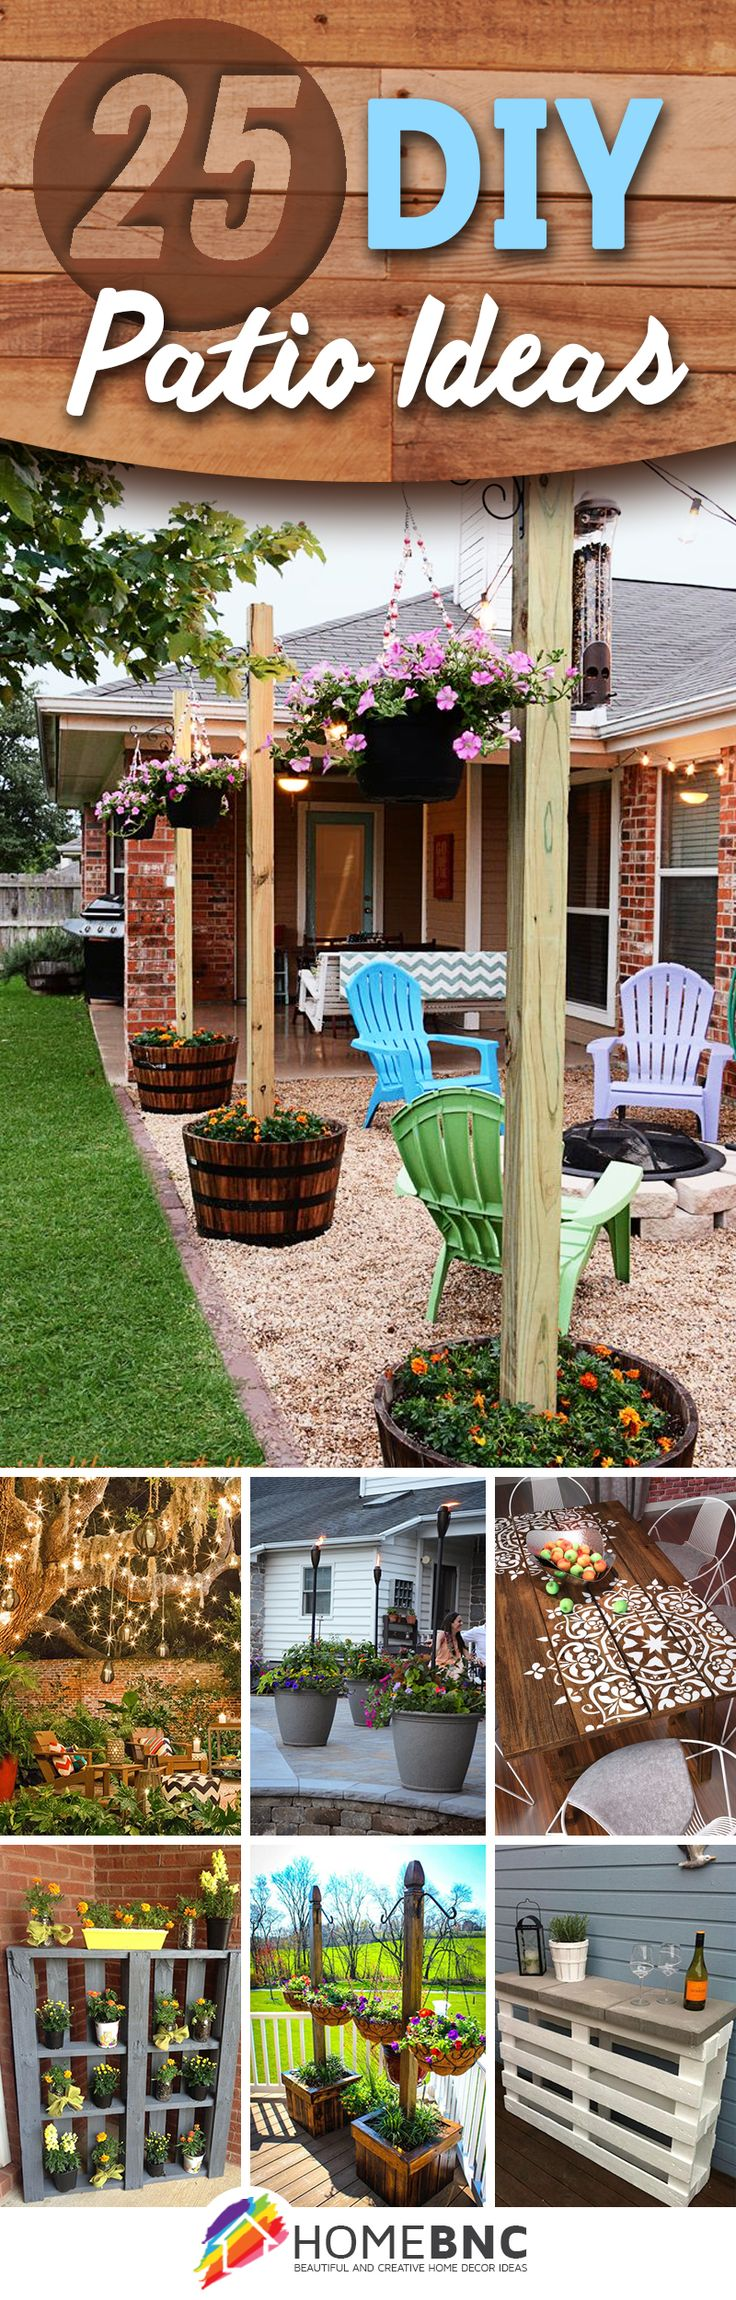 DIY Patio Decorations